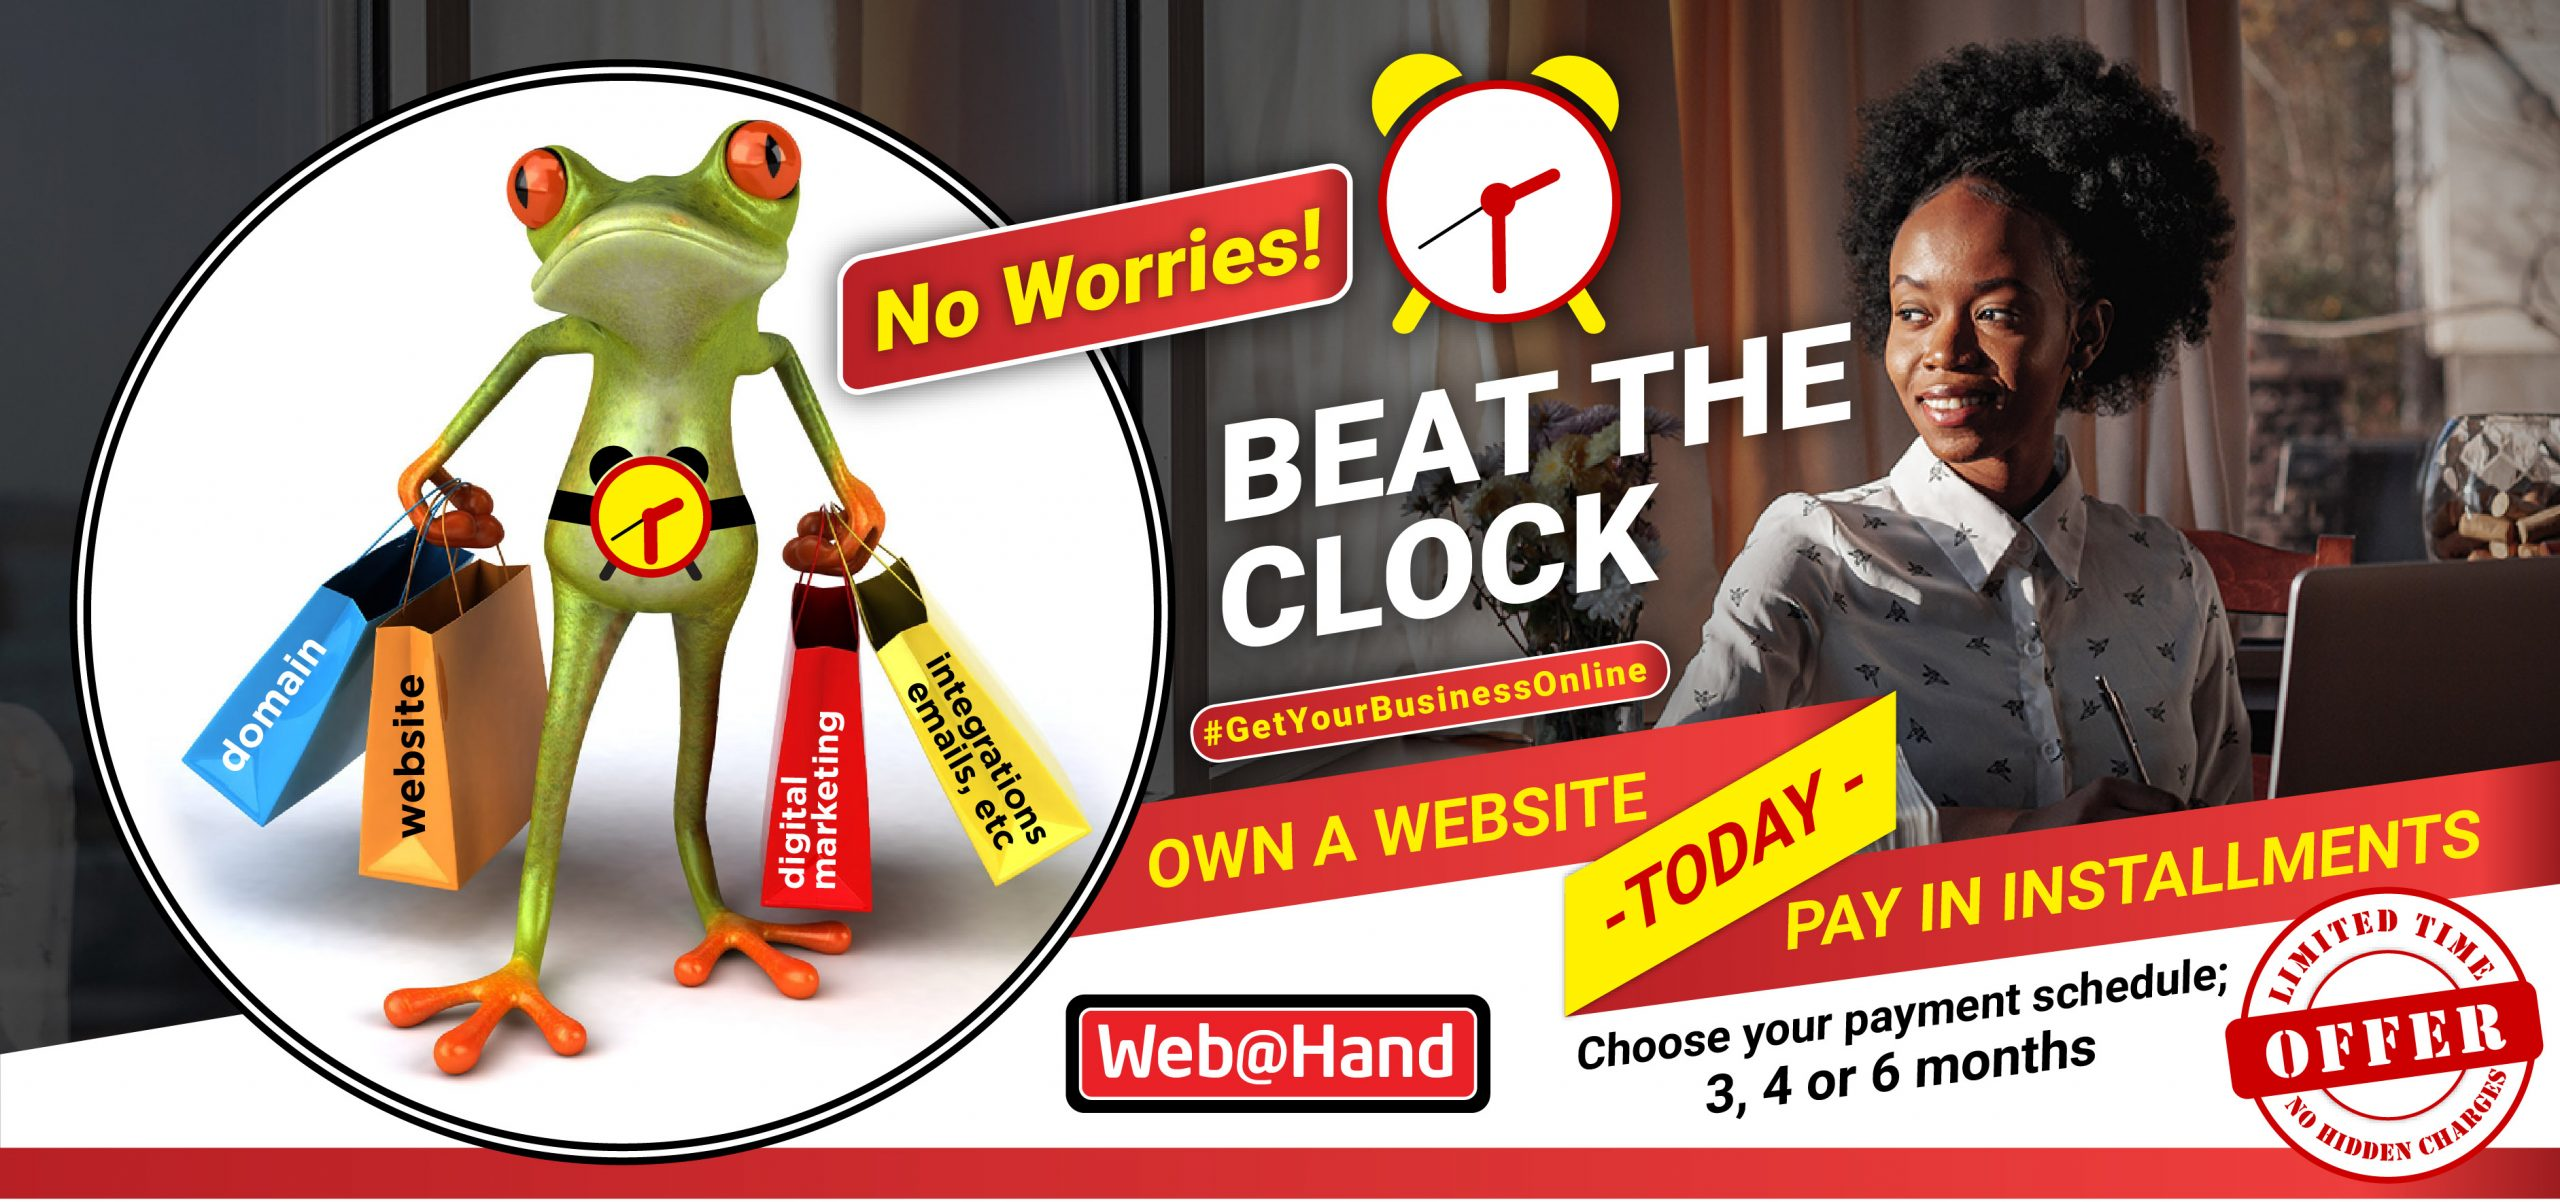 Own a website today and pay in installments